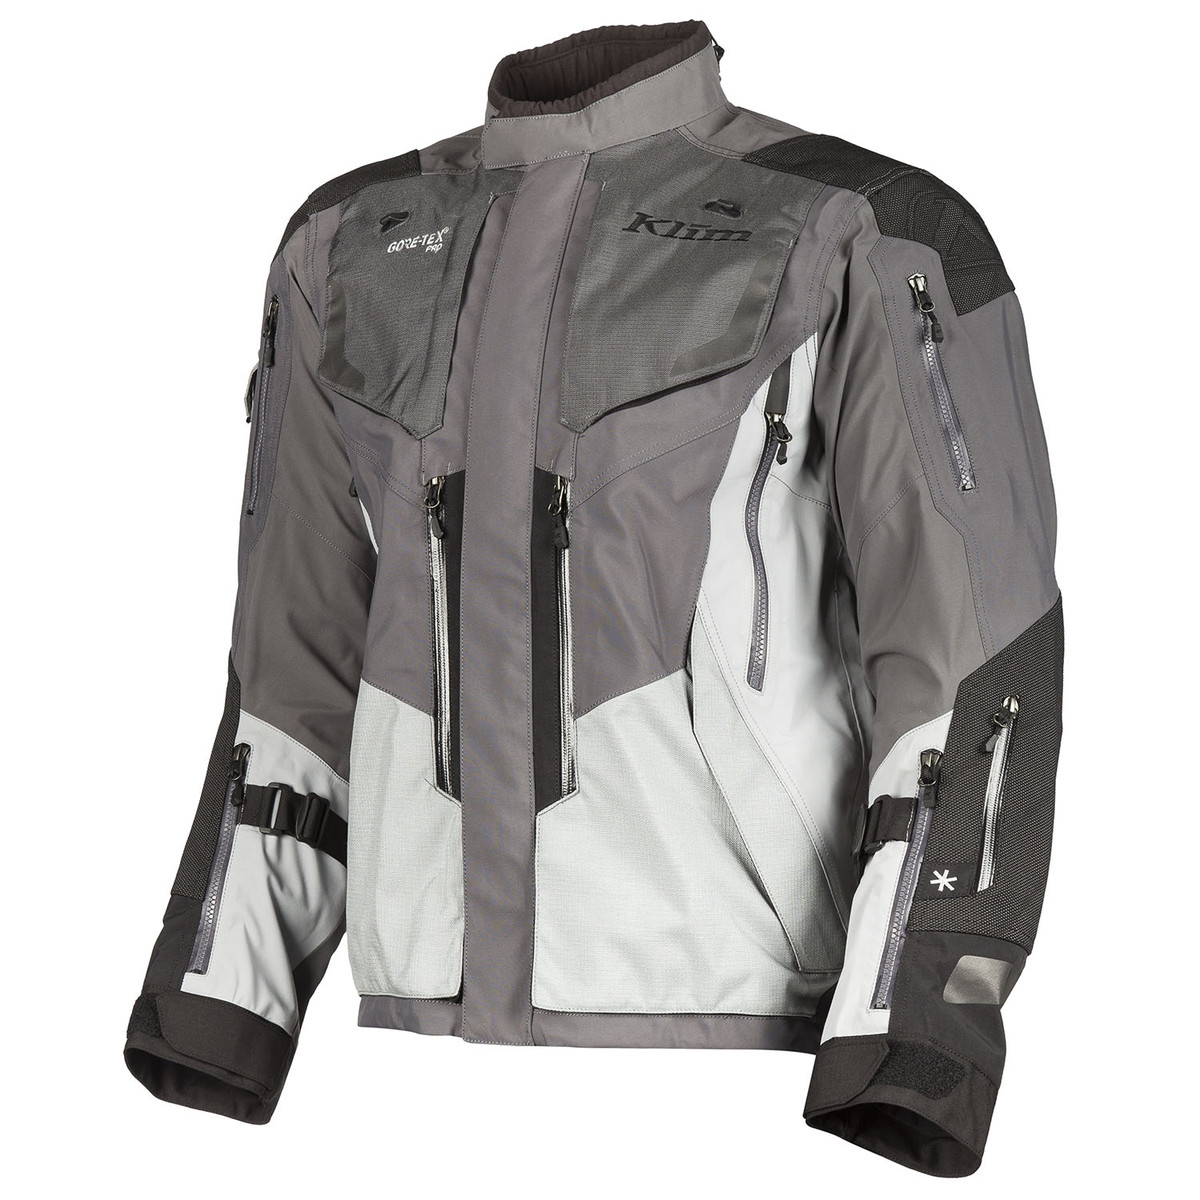 Badlands Pro Jacket Gray Front